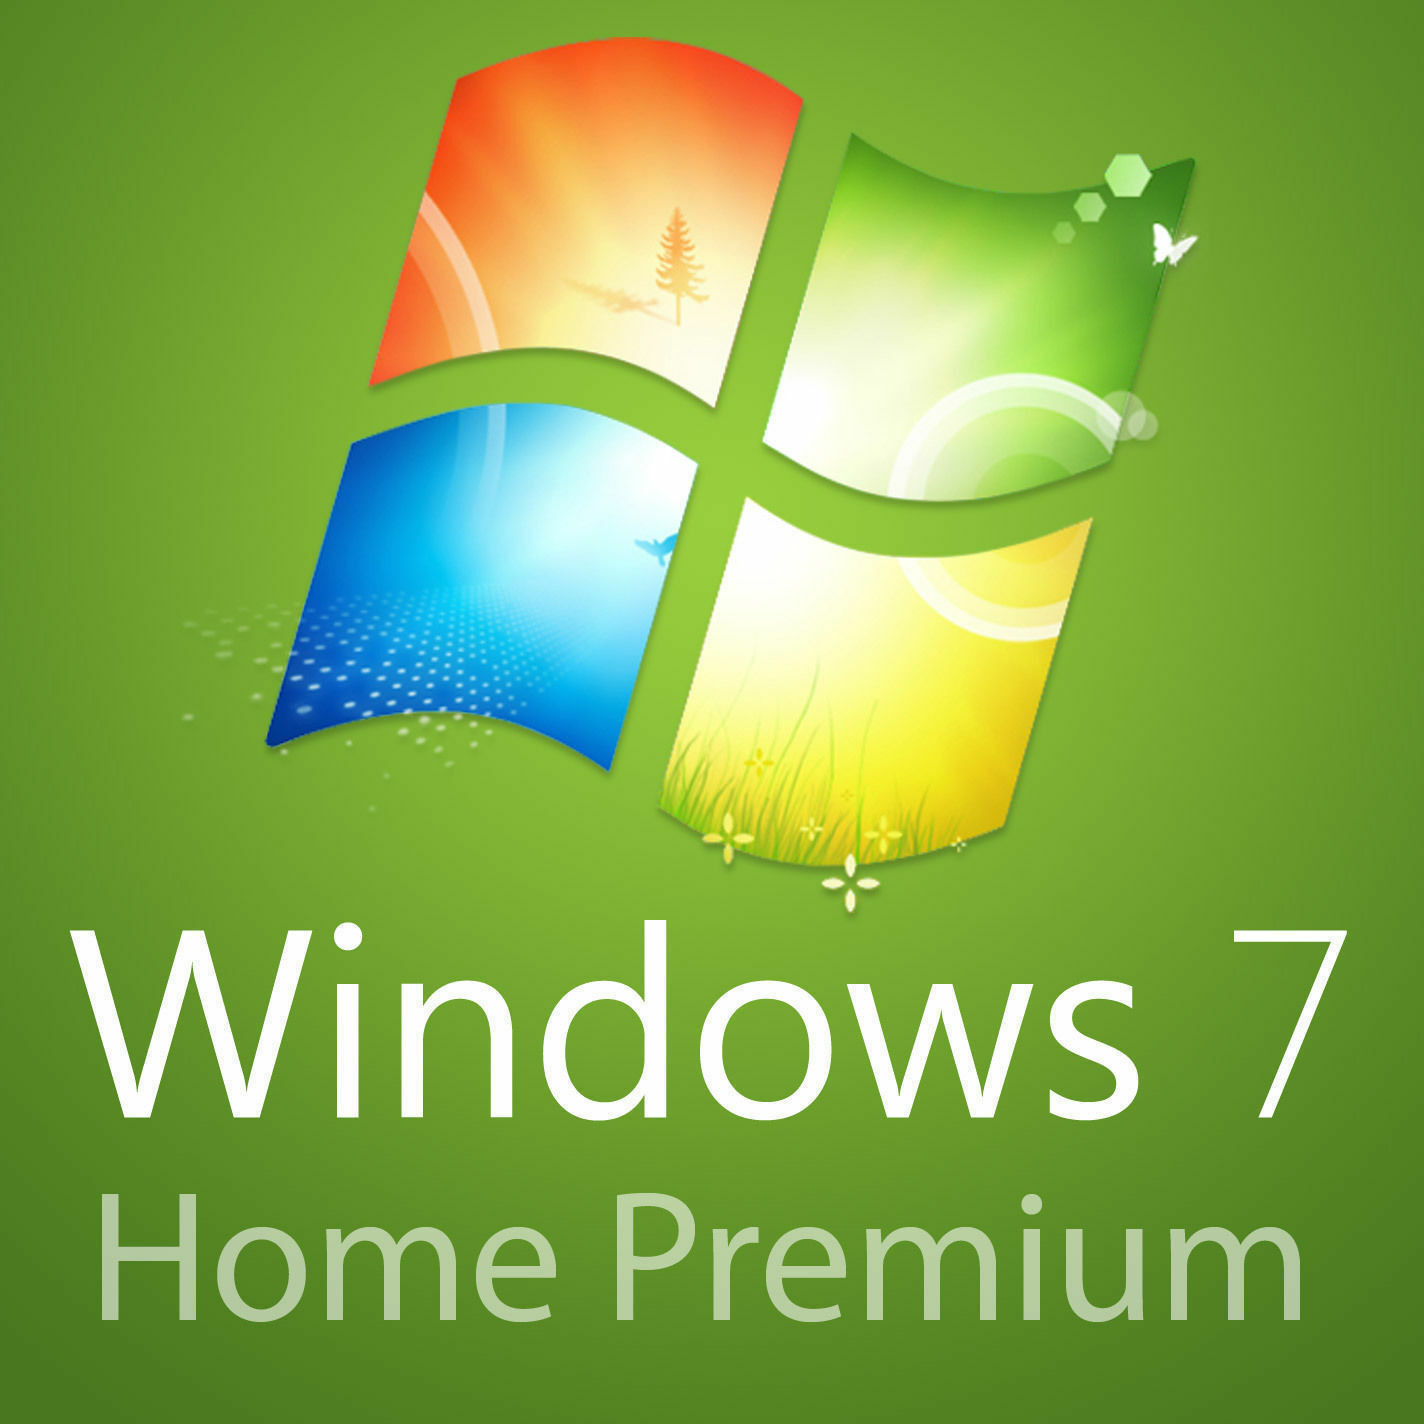 windows 7 home premium key 64 bit